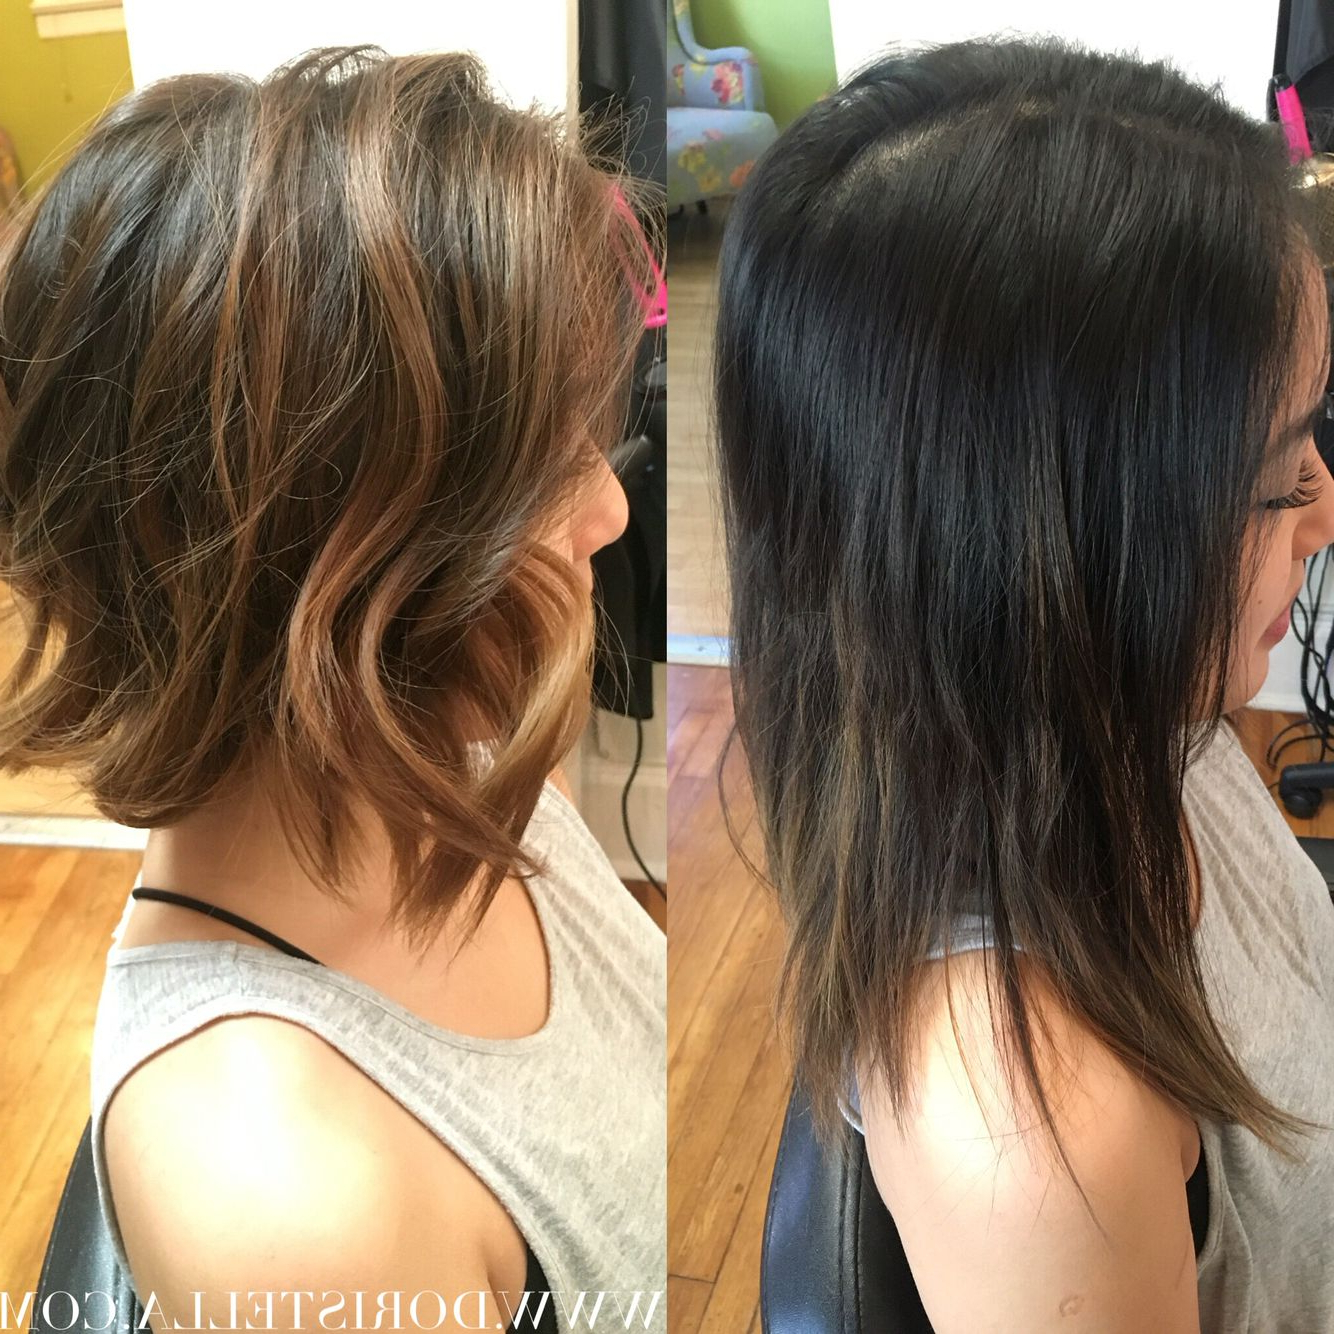 Before & After On My Asian Beauty! Bronde! Balayage With Regard To Latest Beach Wave Bob Hairstyles With Highlights (View 12 of 20)